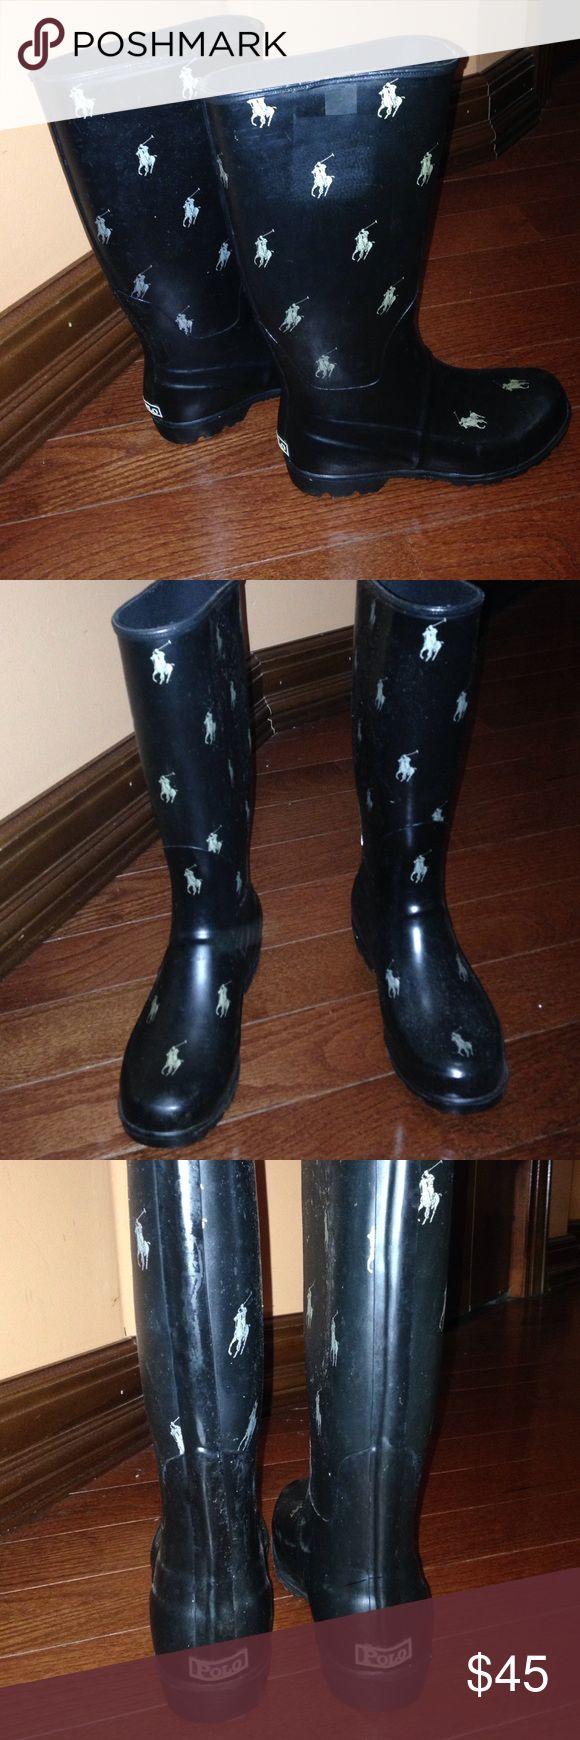 ✨SALE‼️Brand new. POLO RAINBOOTS!! BRAND NEW POLO RAIN BOOTS!! Perfect for the rainy weather. Worn only once. Size: 4 but cuts a little big I normally wear a 5.5 in boots and this boots fits me a little big. Willing to go lower! Polo by Ralph Lauren Shoes Winter & Rain Boots